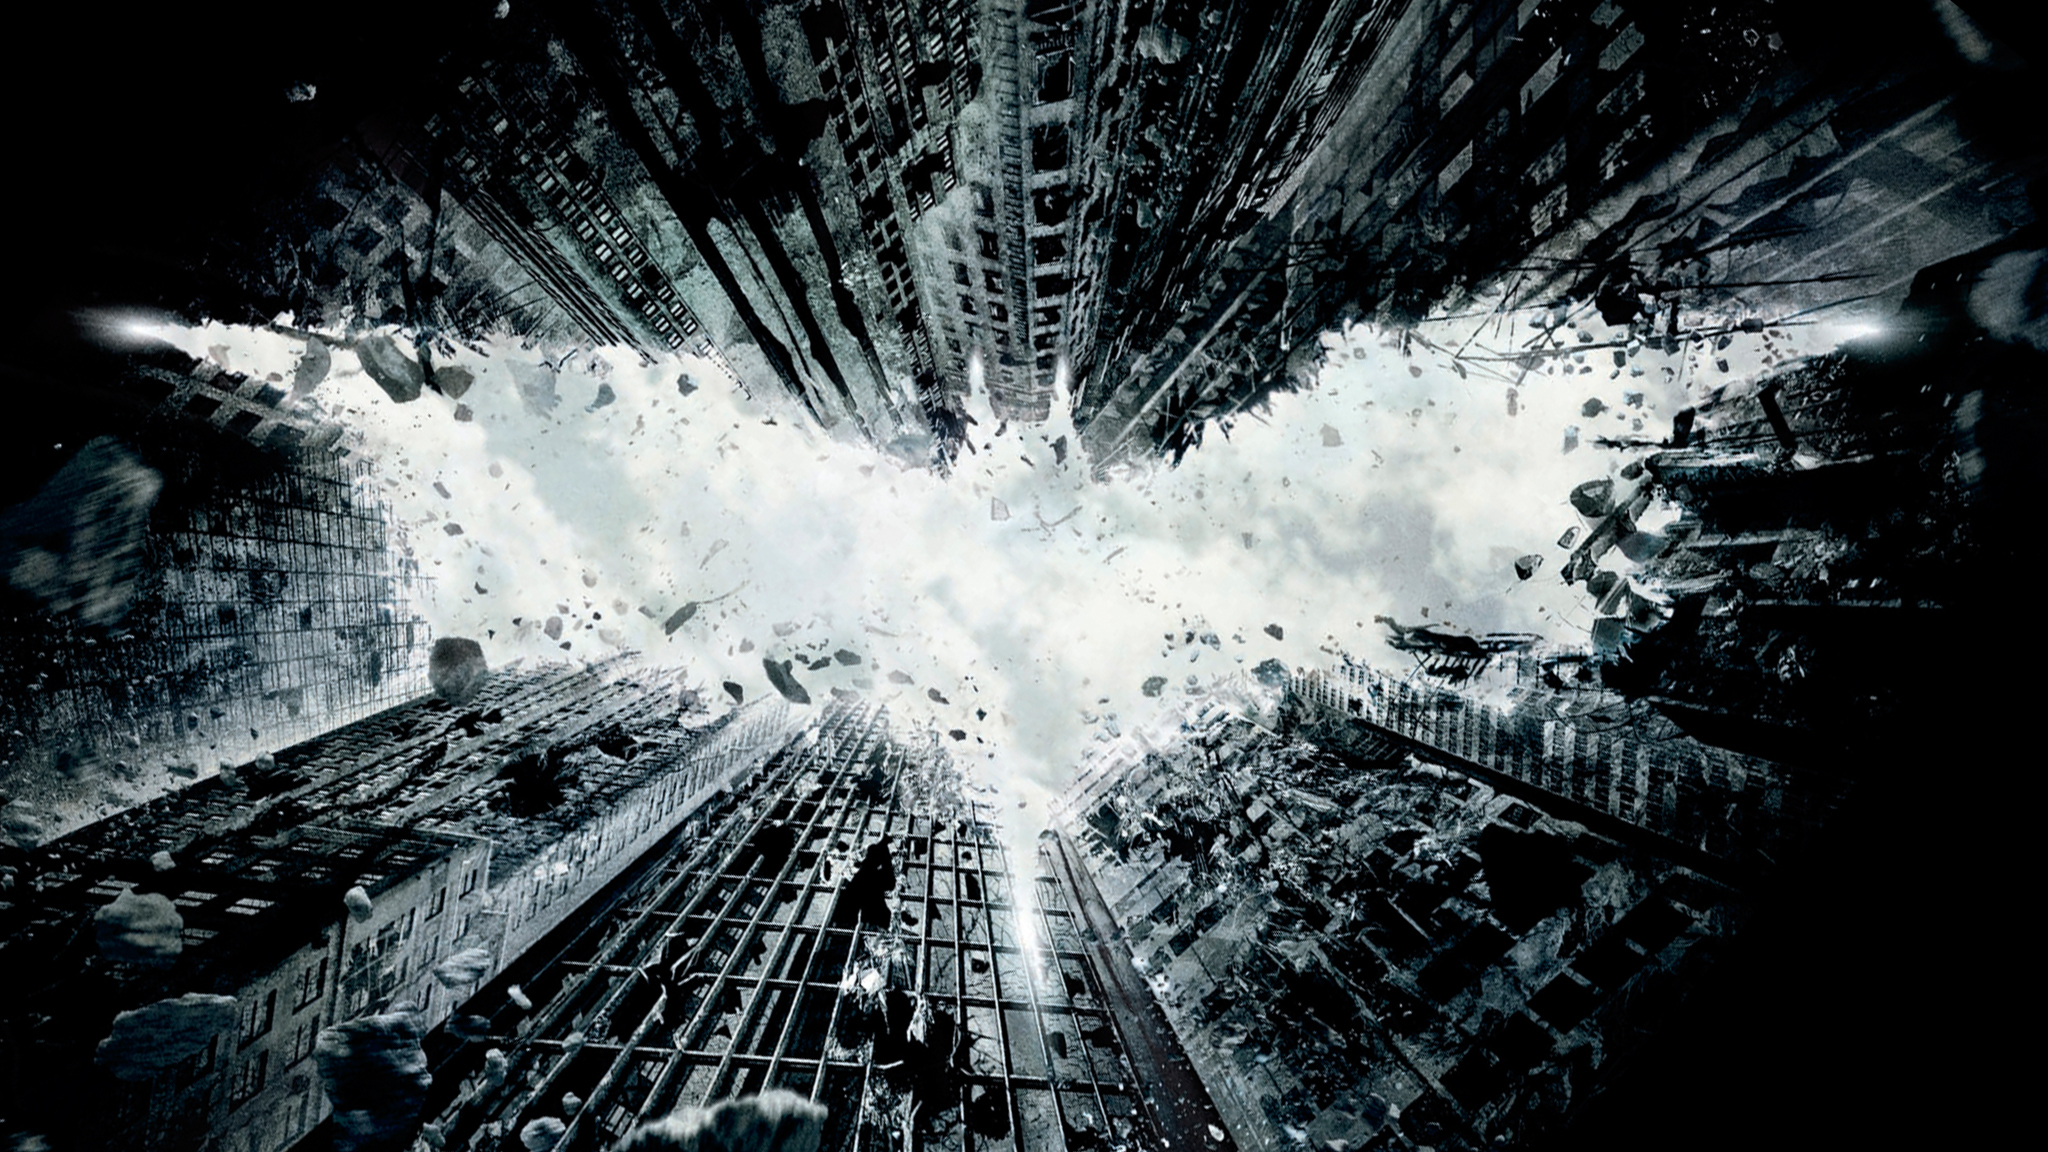 Dark Knight Rises Computer Wallpapers, Desktop Backgrounds ...